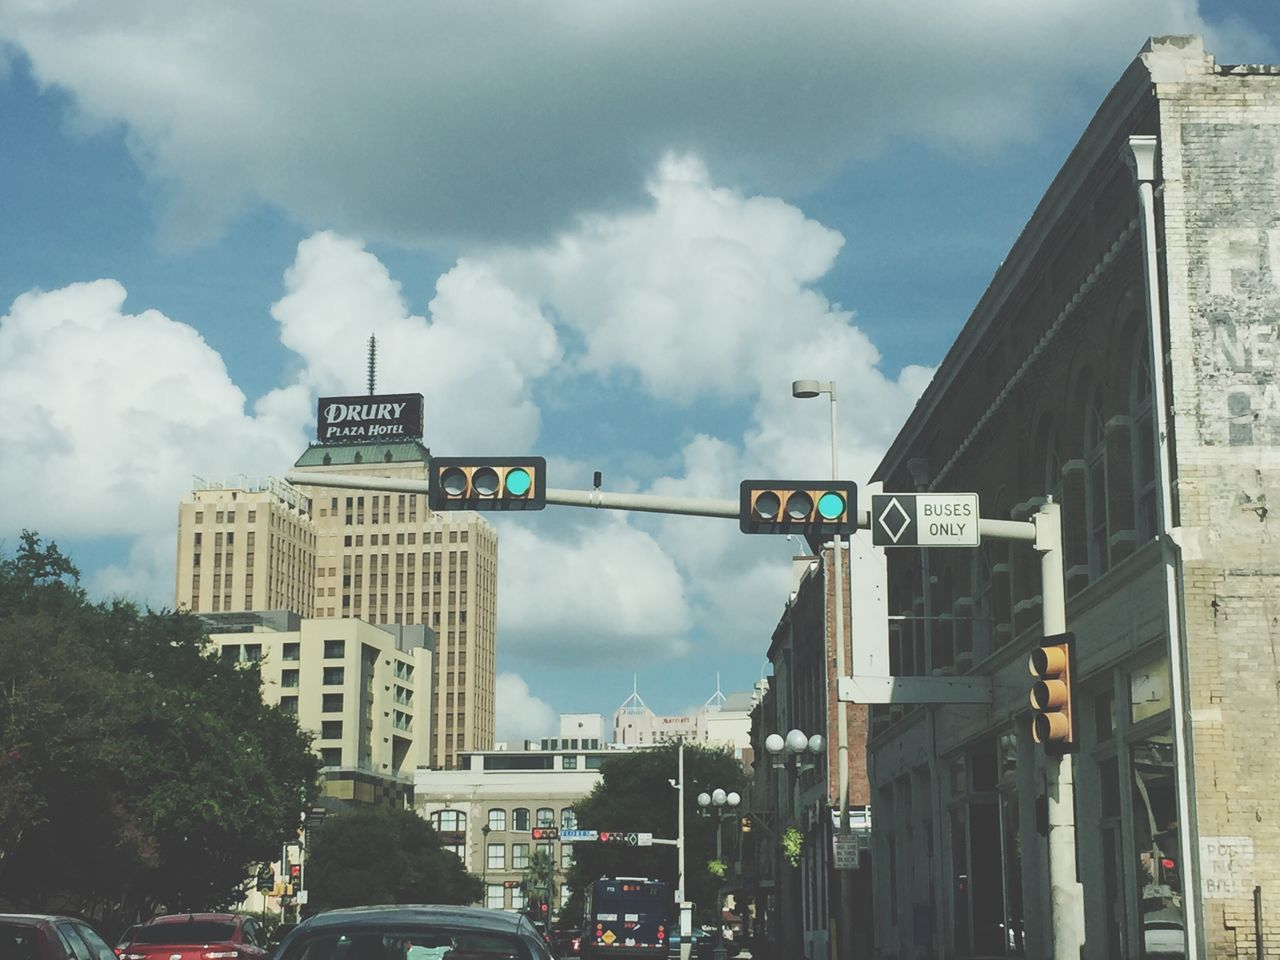 cloud - sky, architecture, sky, built structure, building exterior, day, city, outdoors, transportation, low angle view, no people, road